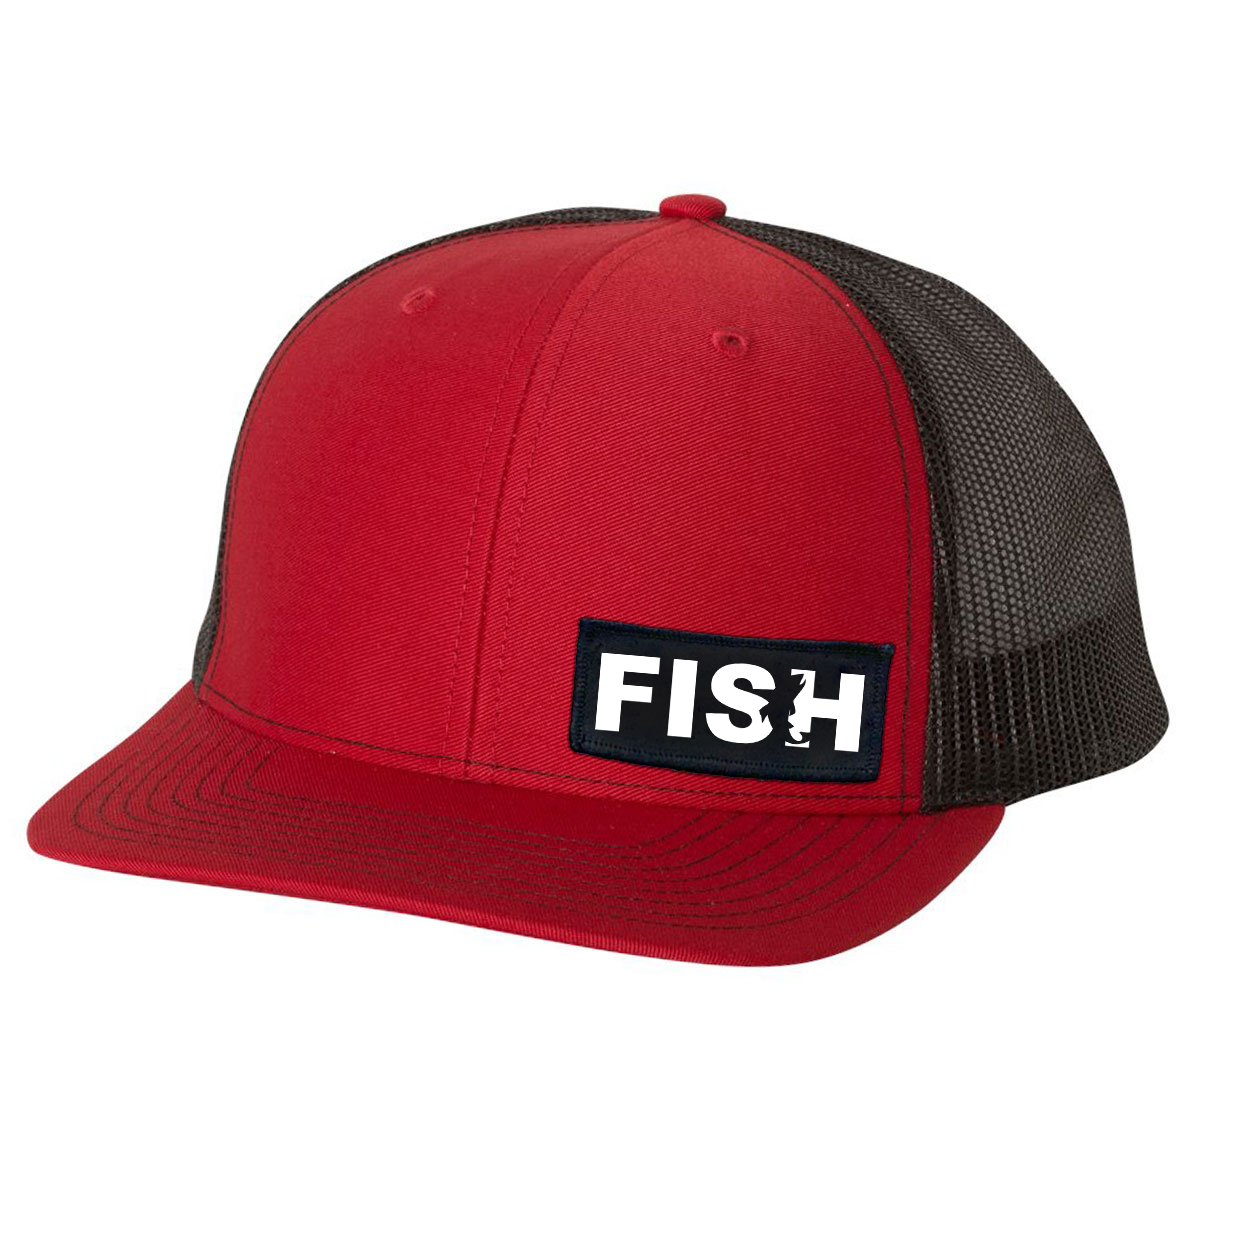 Fish Catch Logo Night Out Woven Patch Snapback Trucker Hat Red/Black (White Logo)